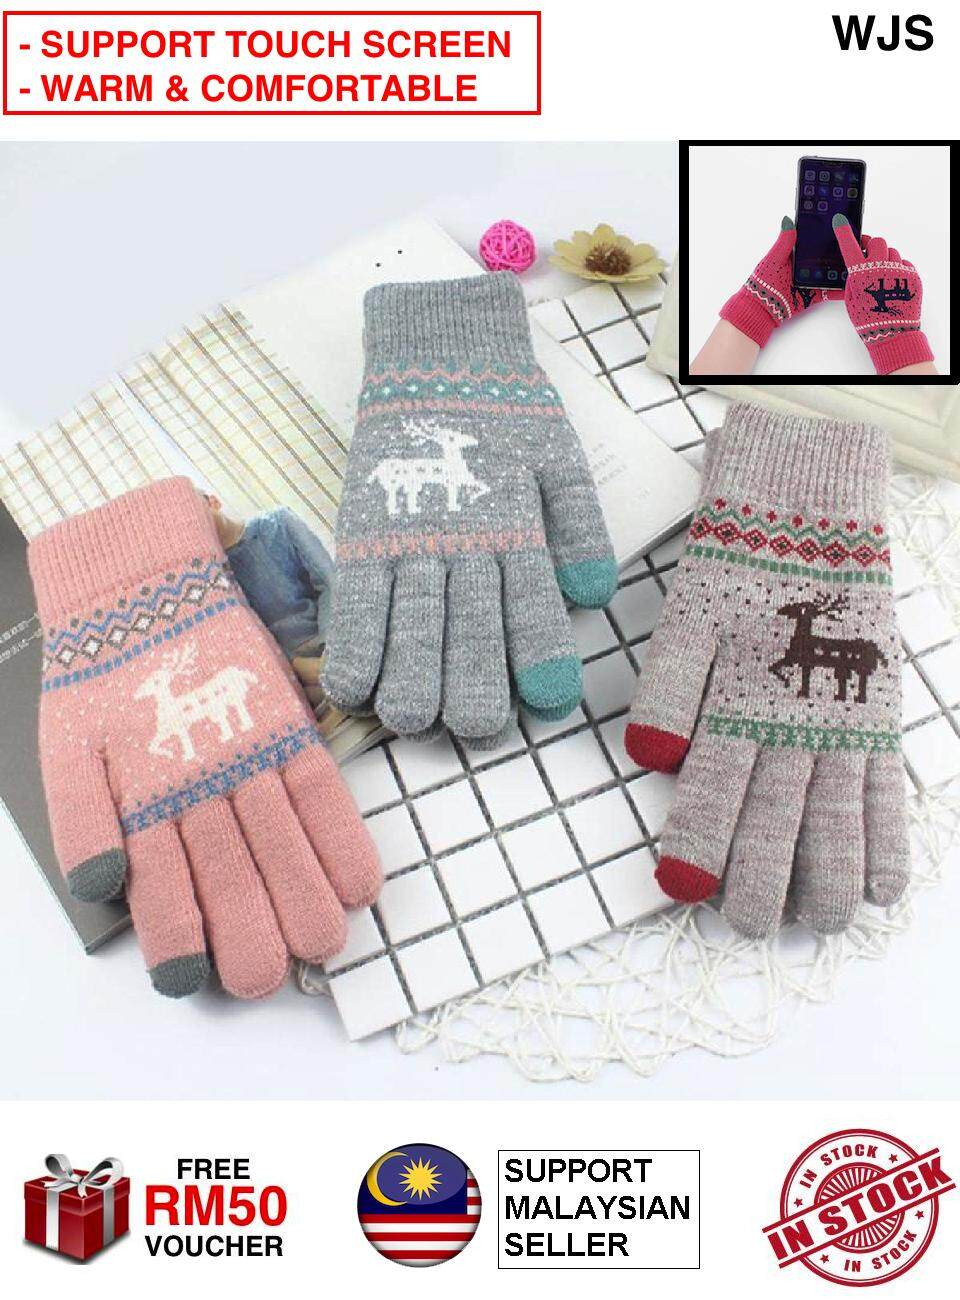 (SUPPORT TOUCH SCREEN) WJS Women Winter Reinder Christmas Deer Keep Warm Touch Screen Gloves Girl Christmas Gloves Xmas Glove Winter Gloves Fashion Gloves PINK BLUE GREY [FREE RM 50 VOUCHER]